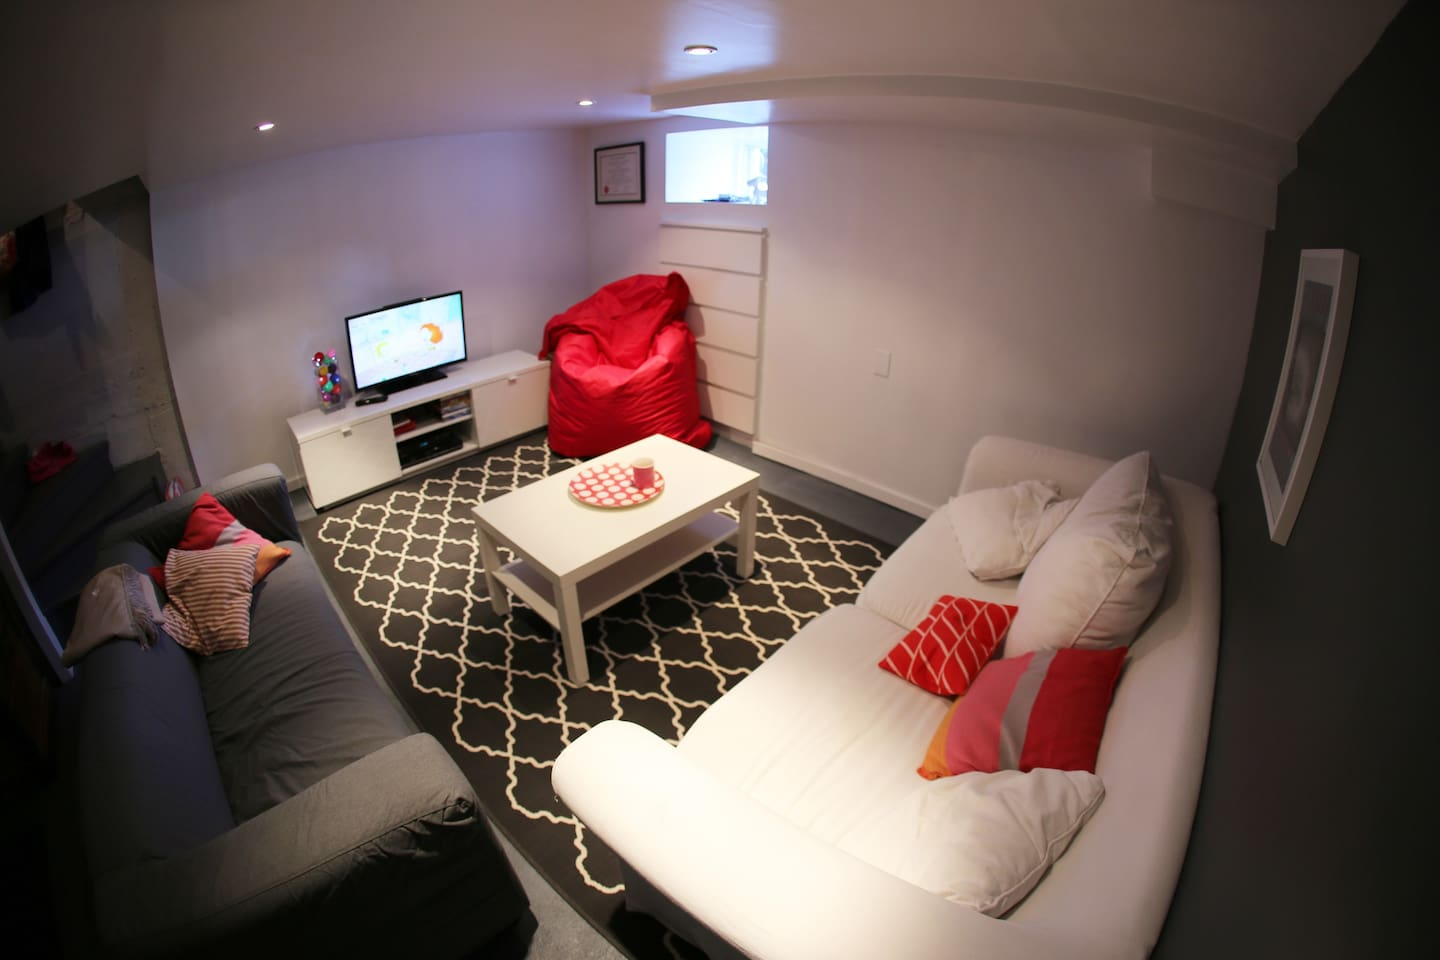 Private living space adjacent to bedroom for 1 person